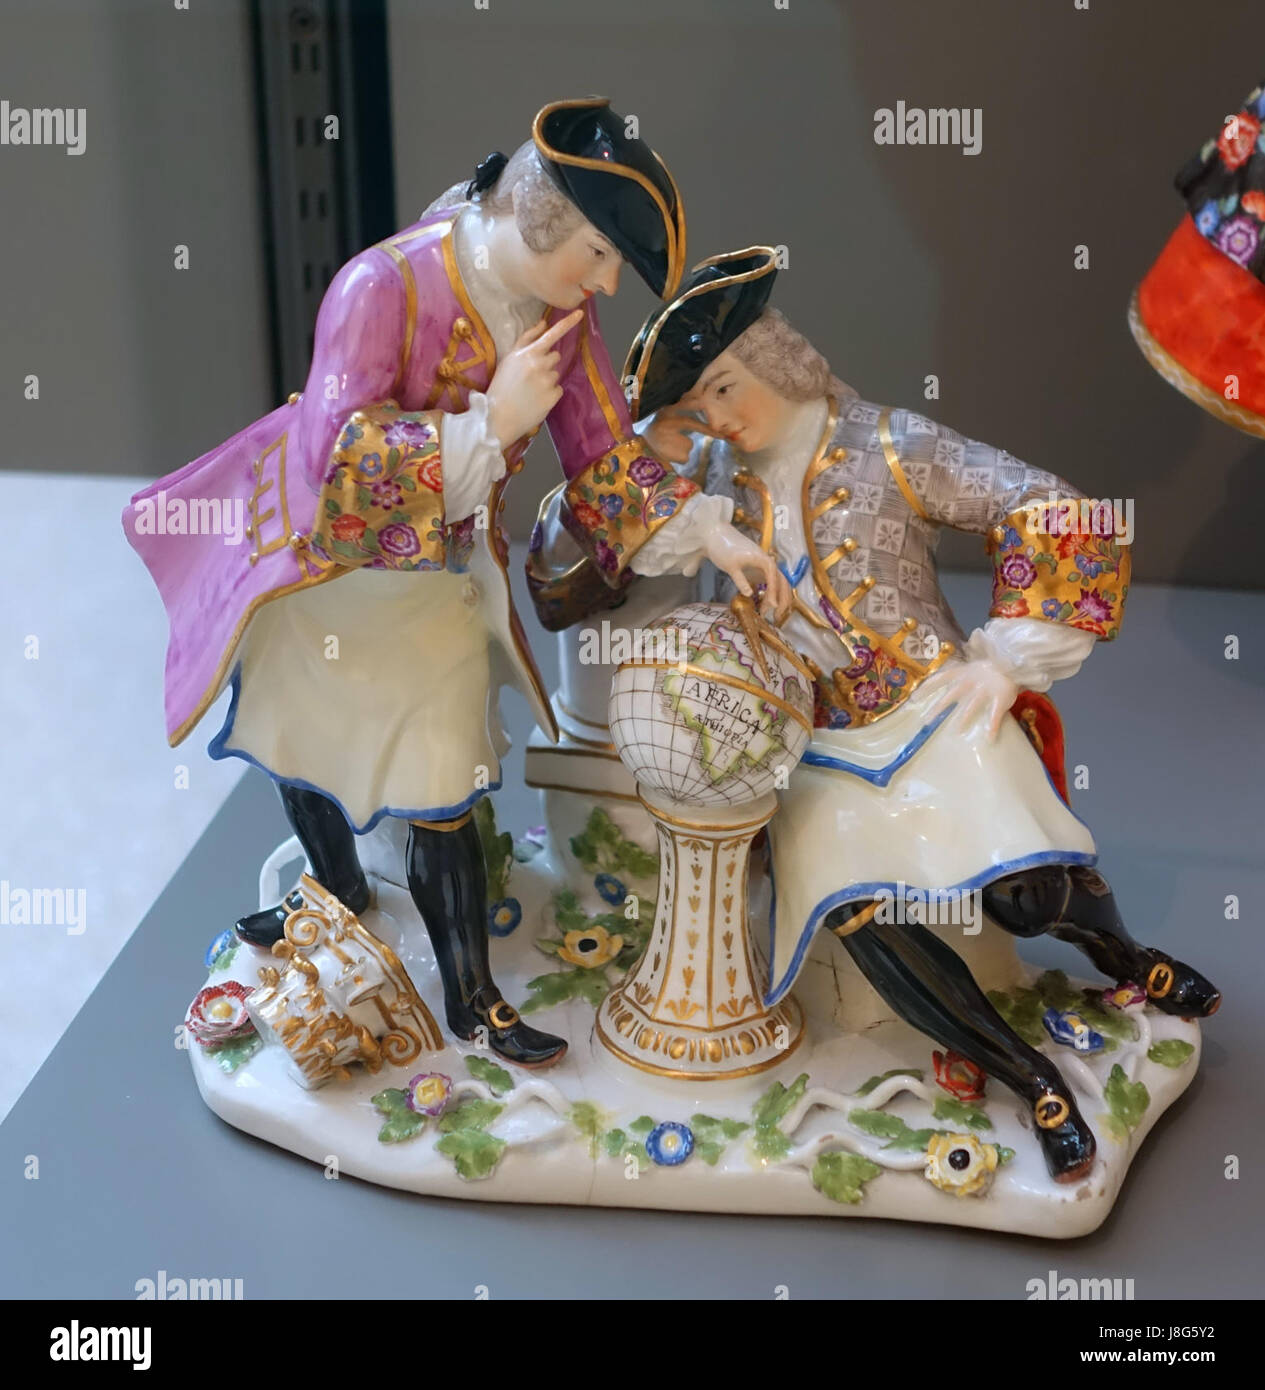 Meissen Group Stock Photos & Meissen Group Stock Images - Alamy